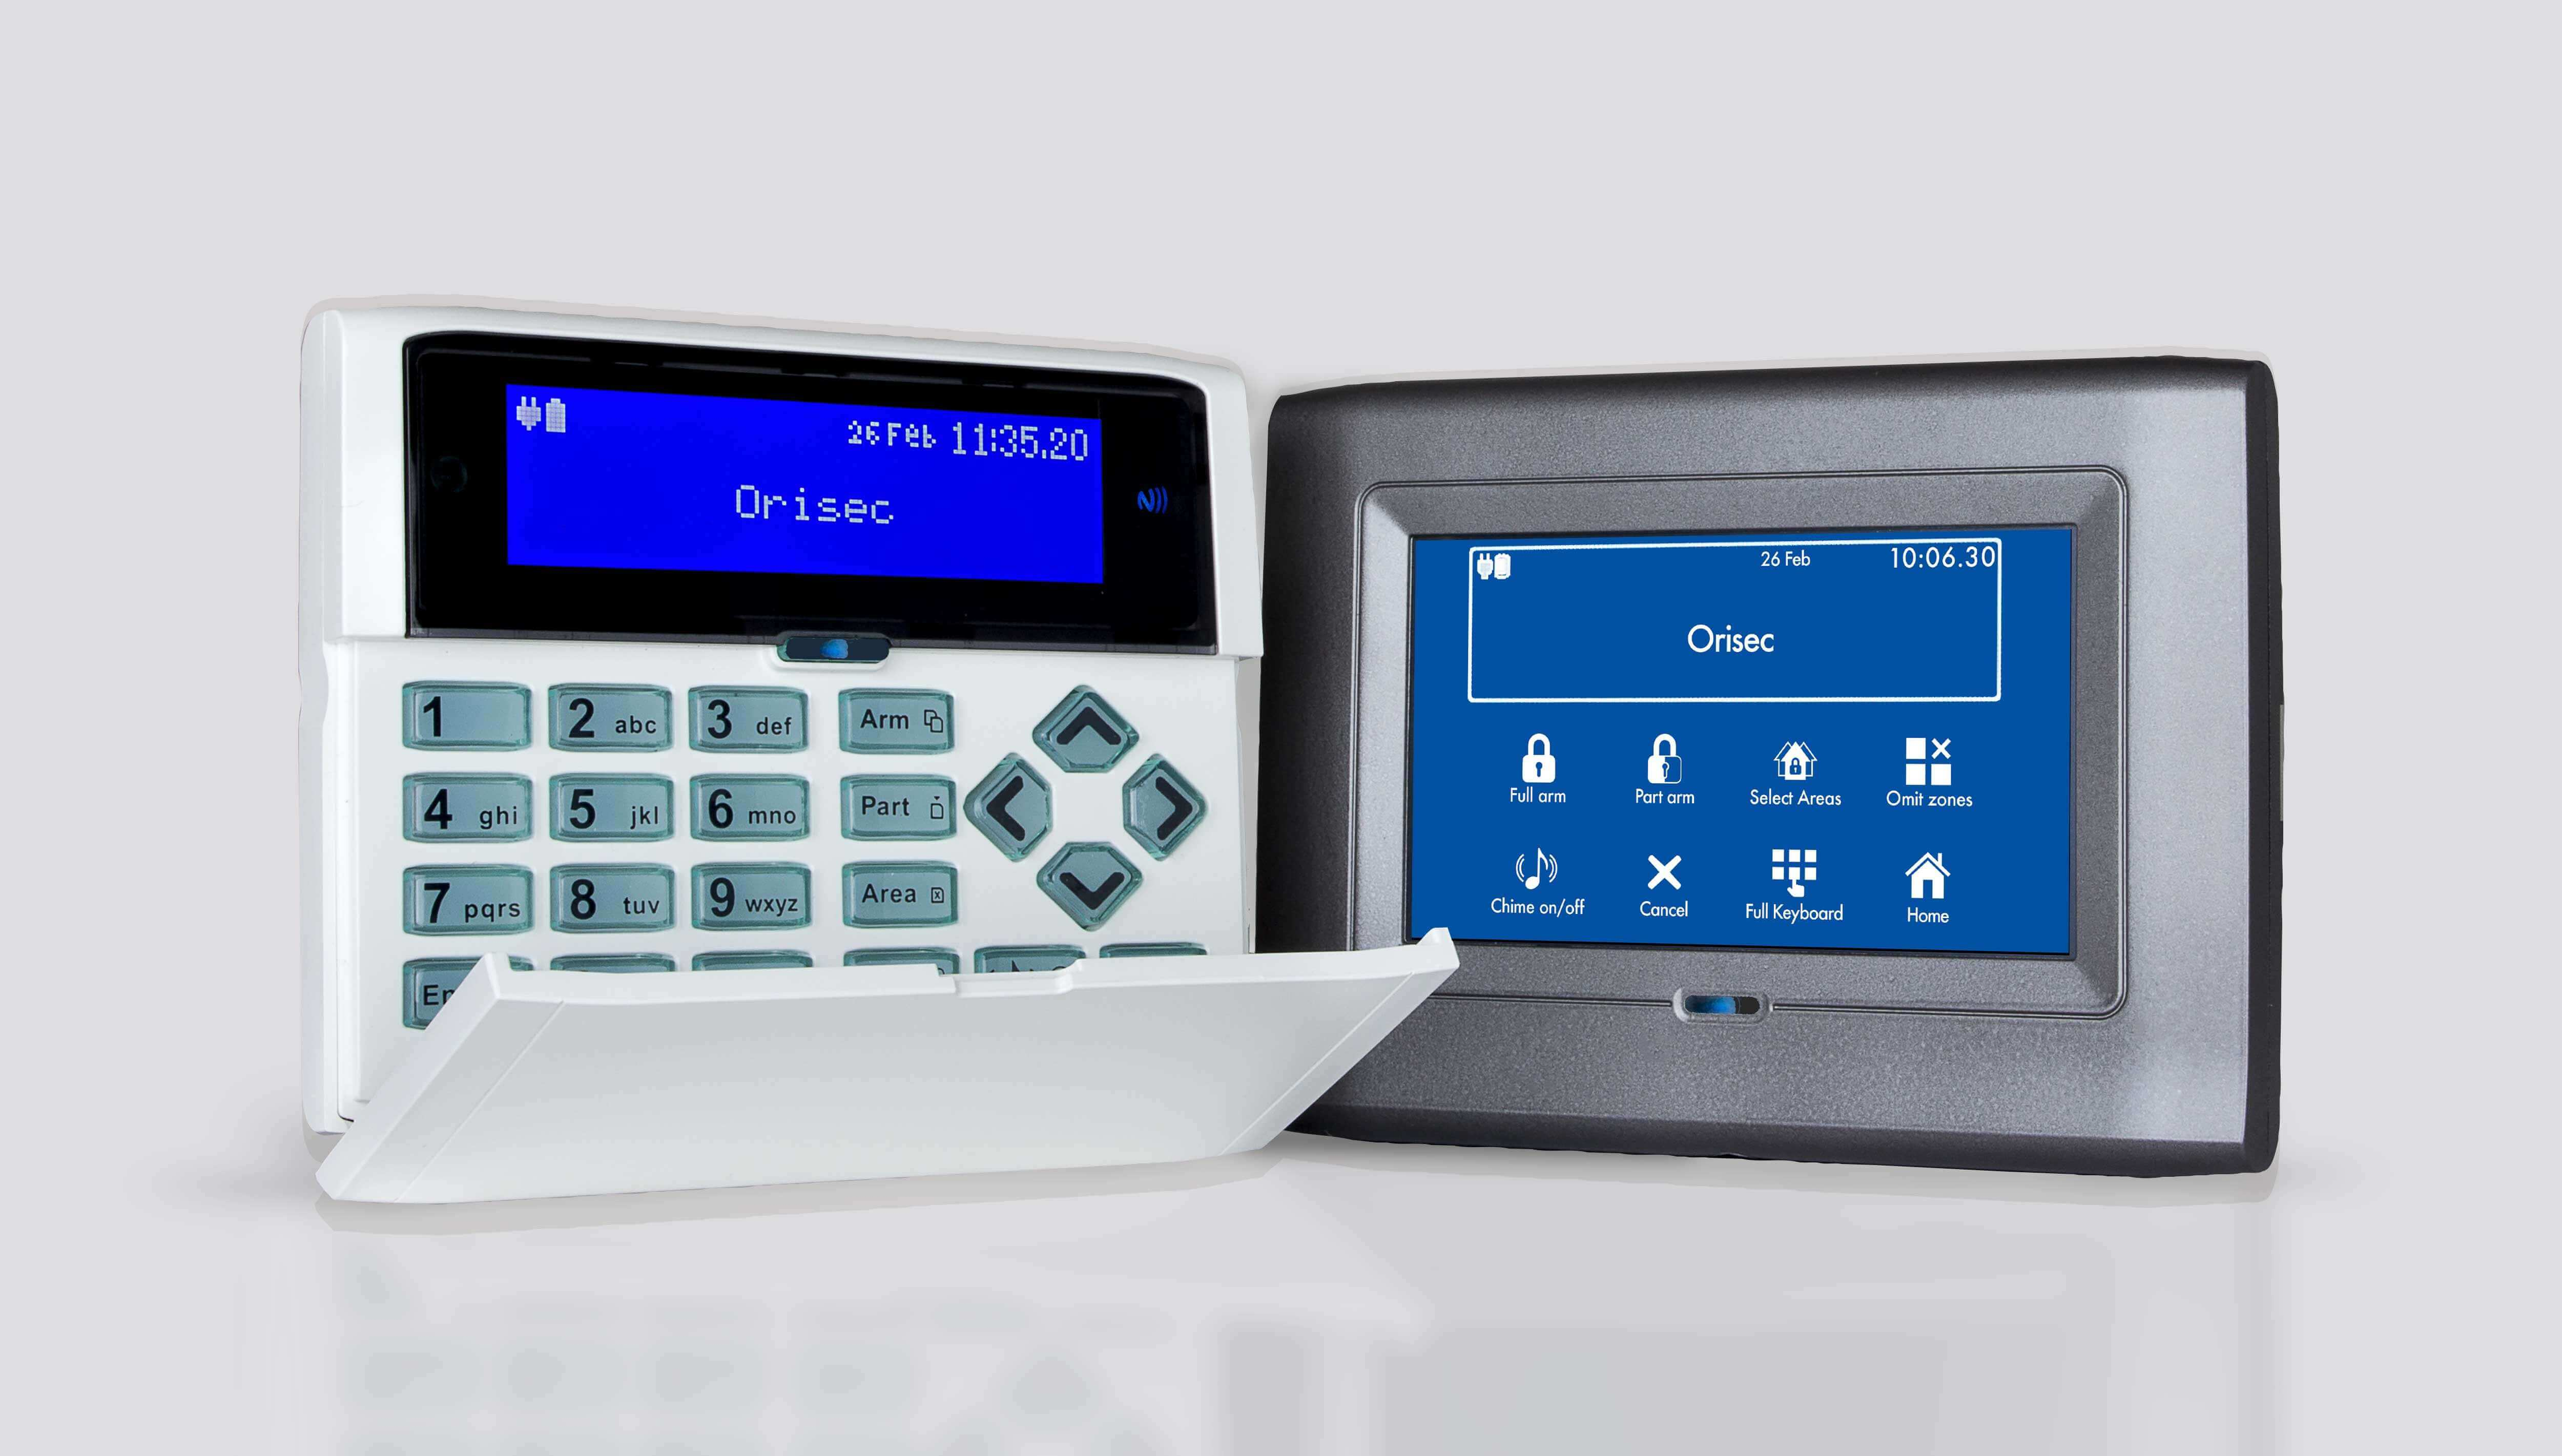 orisec keypads wired and wireless